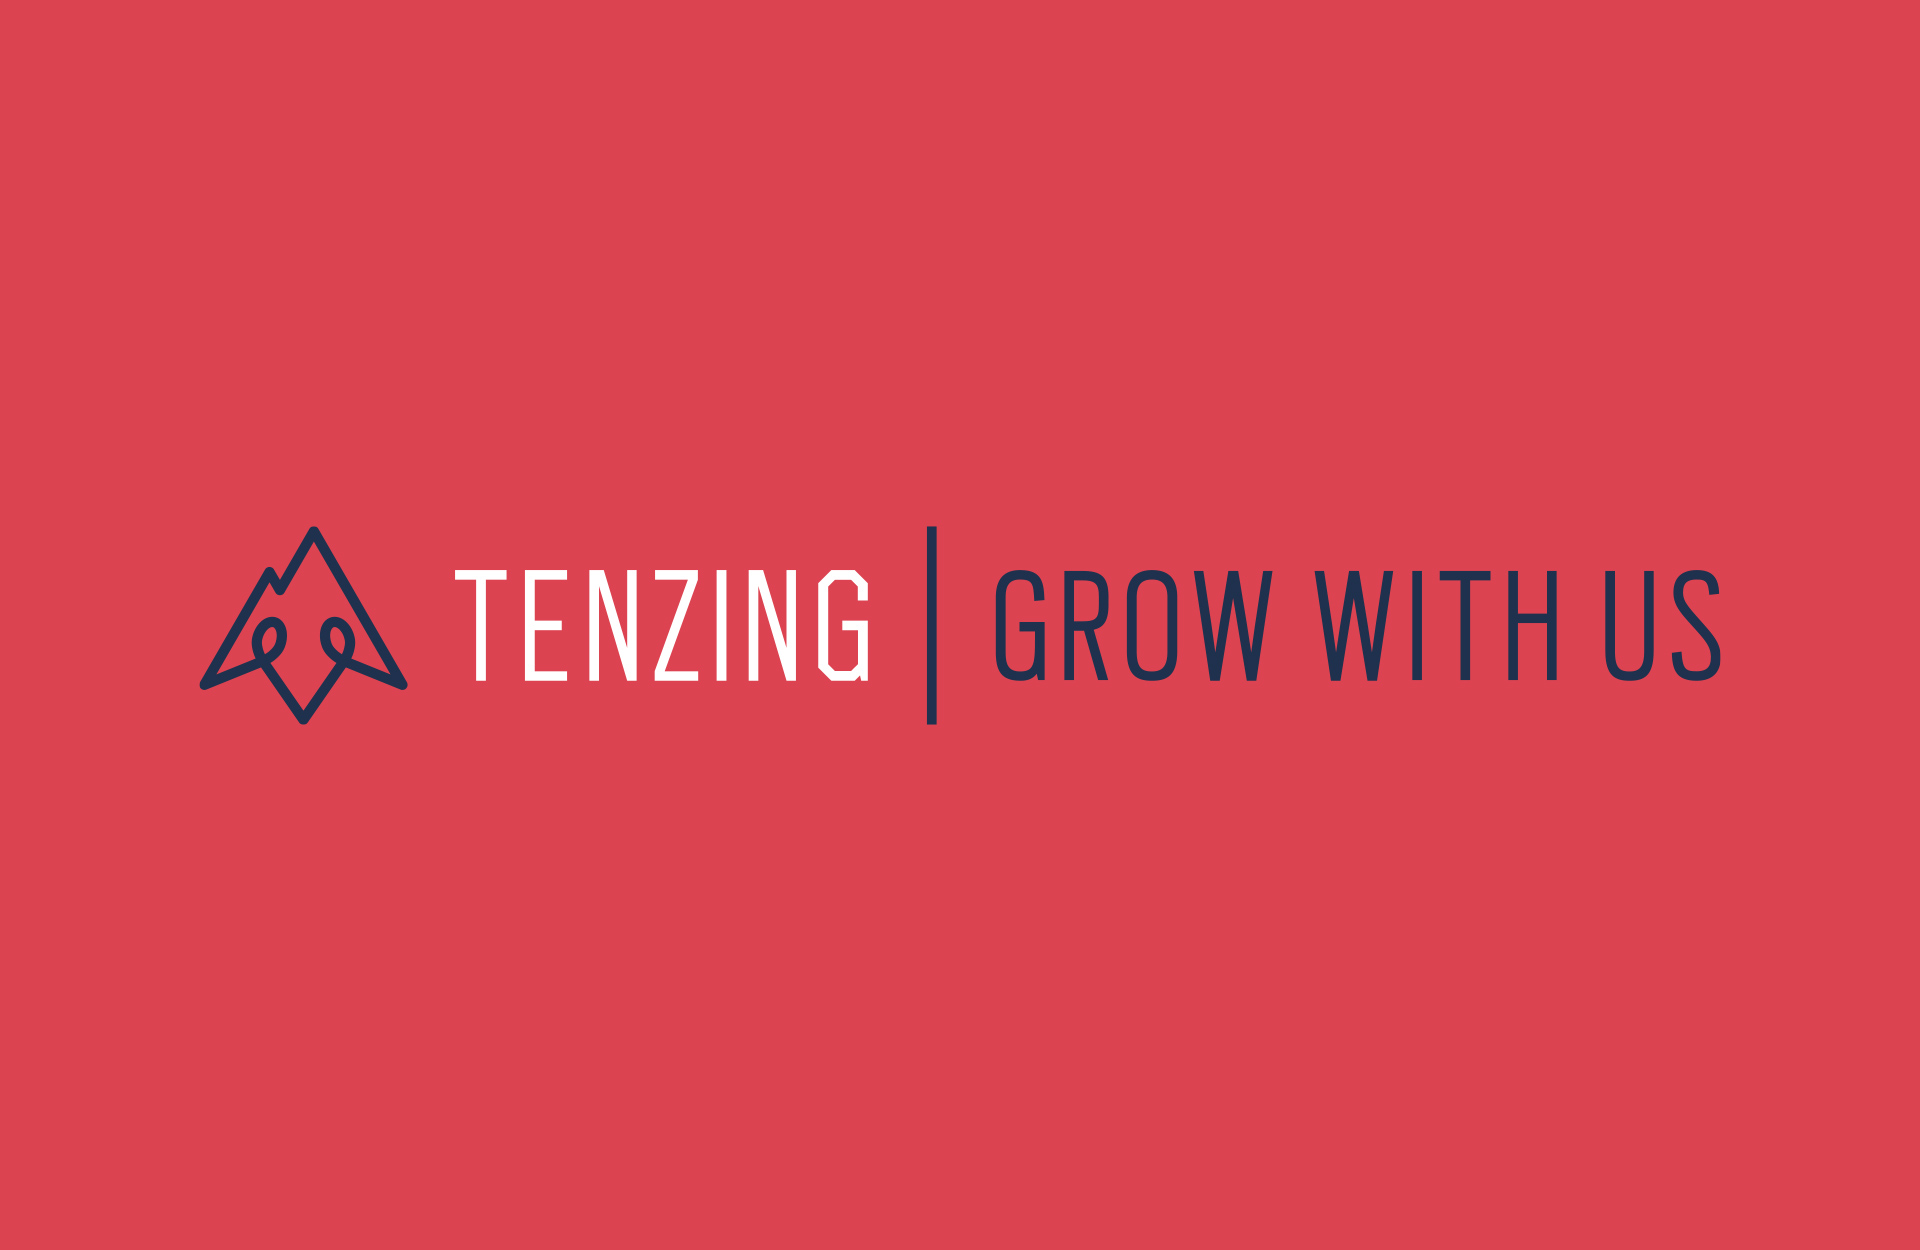 Tenzing - Never Know Defeat